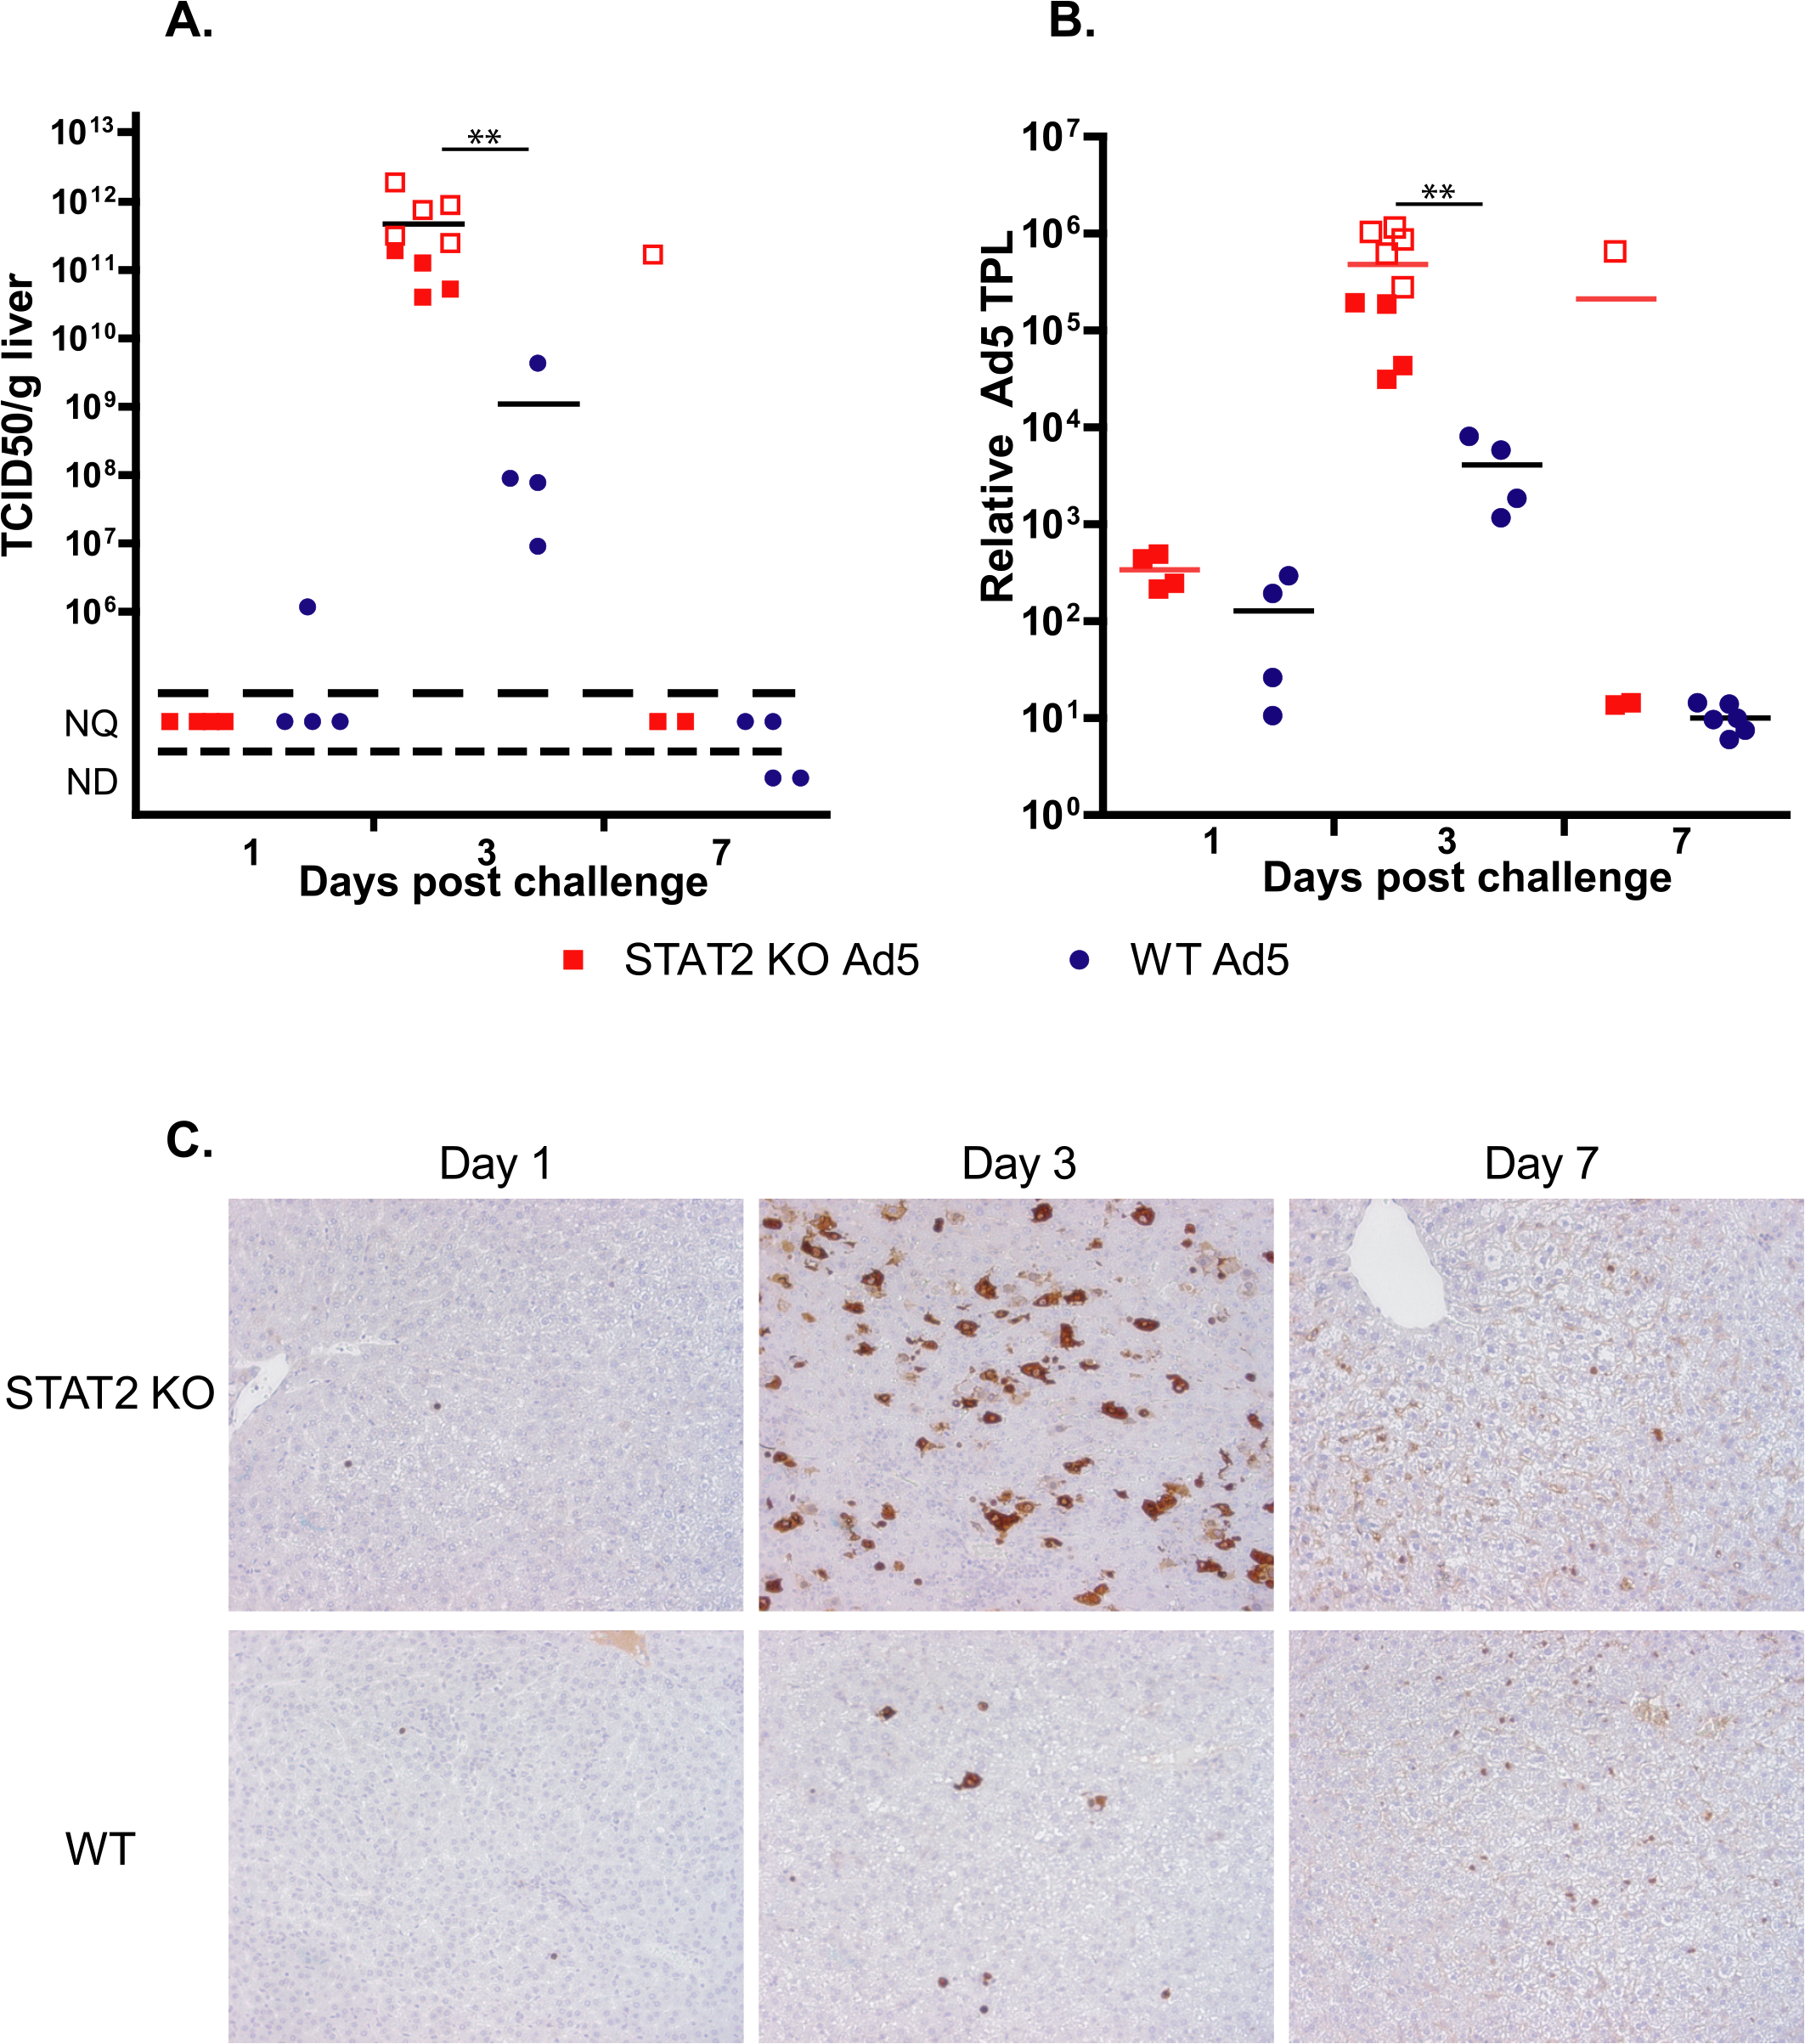 The virus load is higher in Ad5-infected STAT2 KO hamsters than in wt animals.